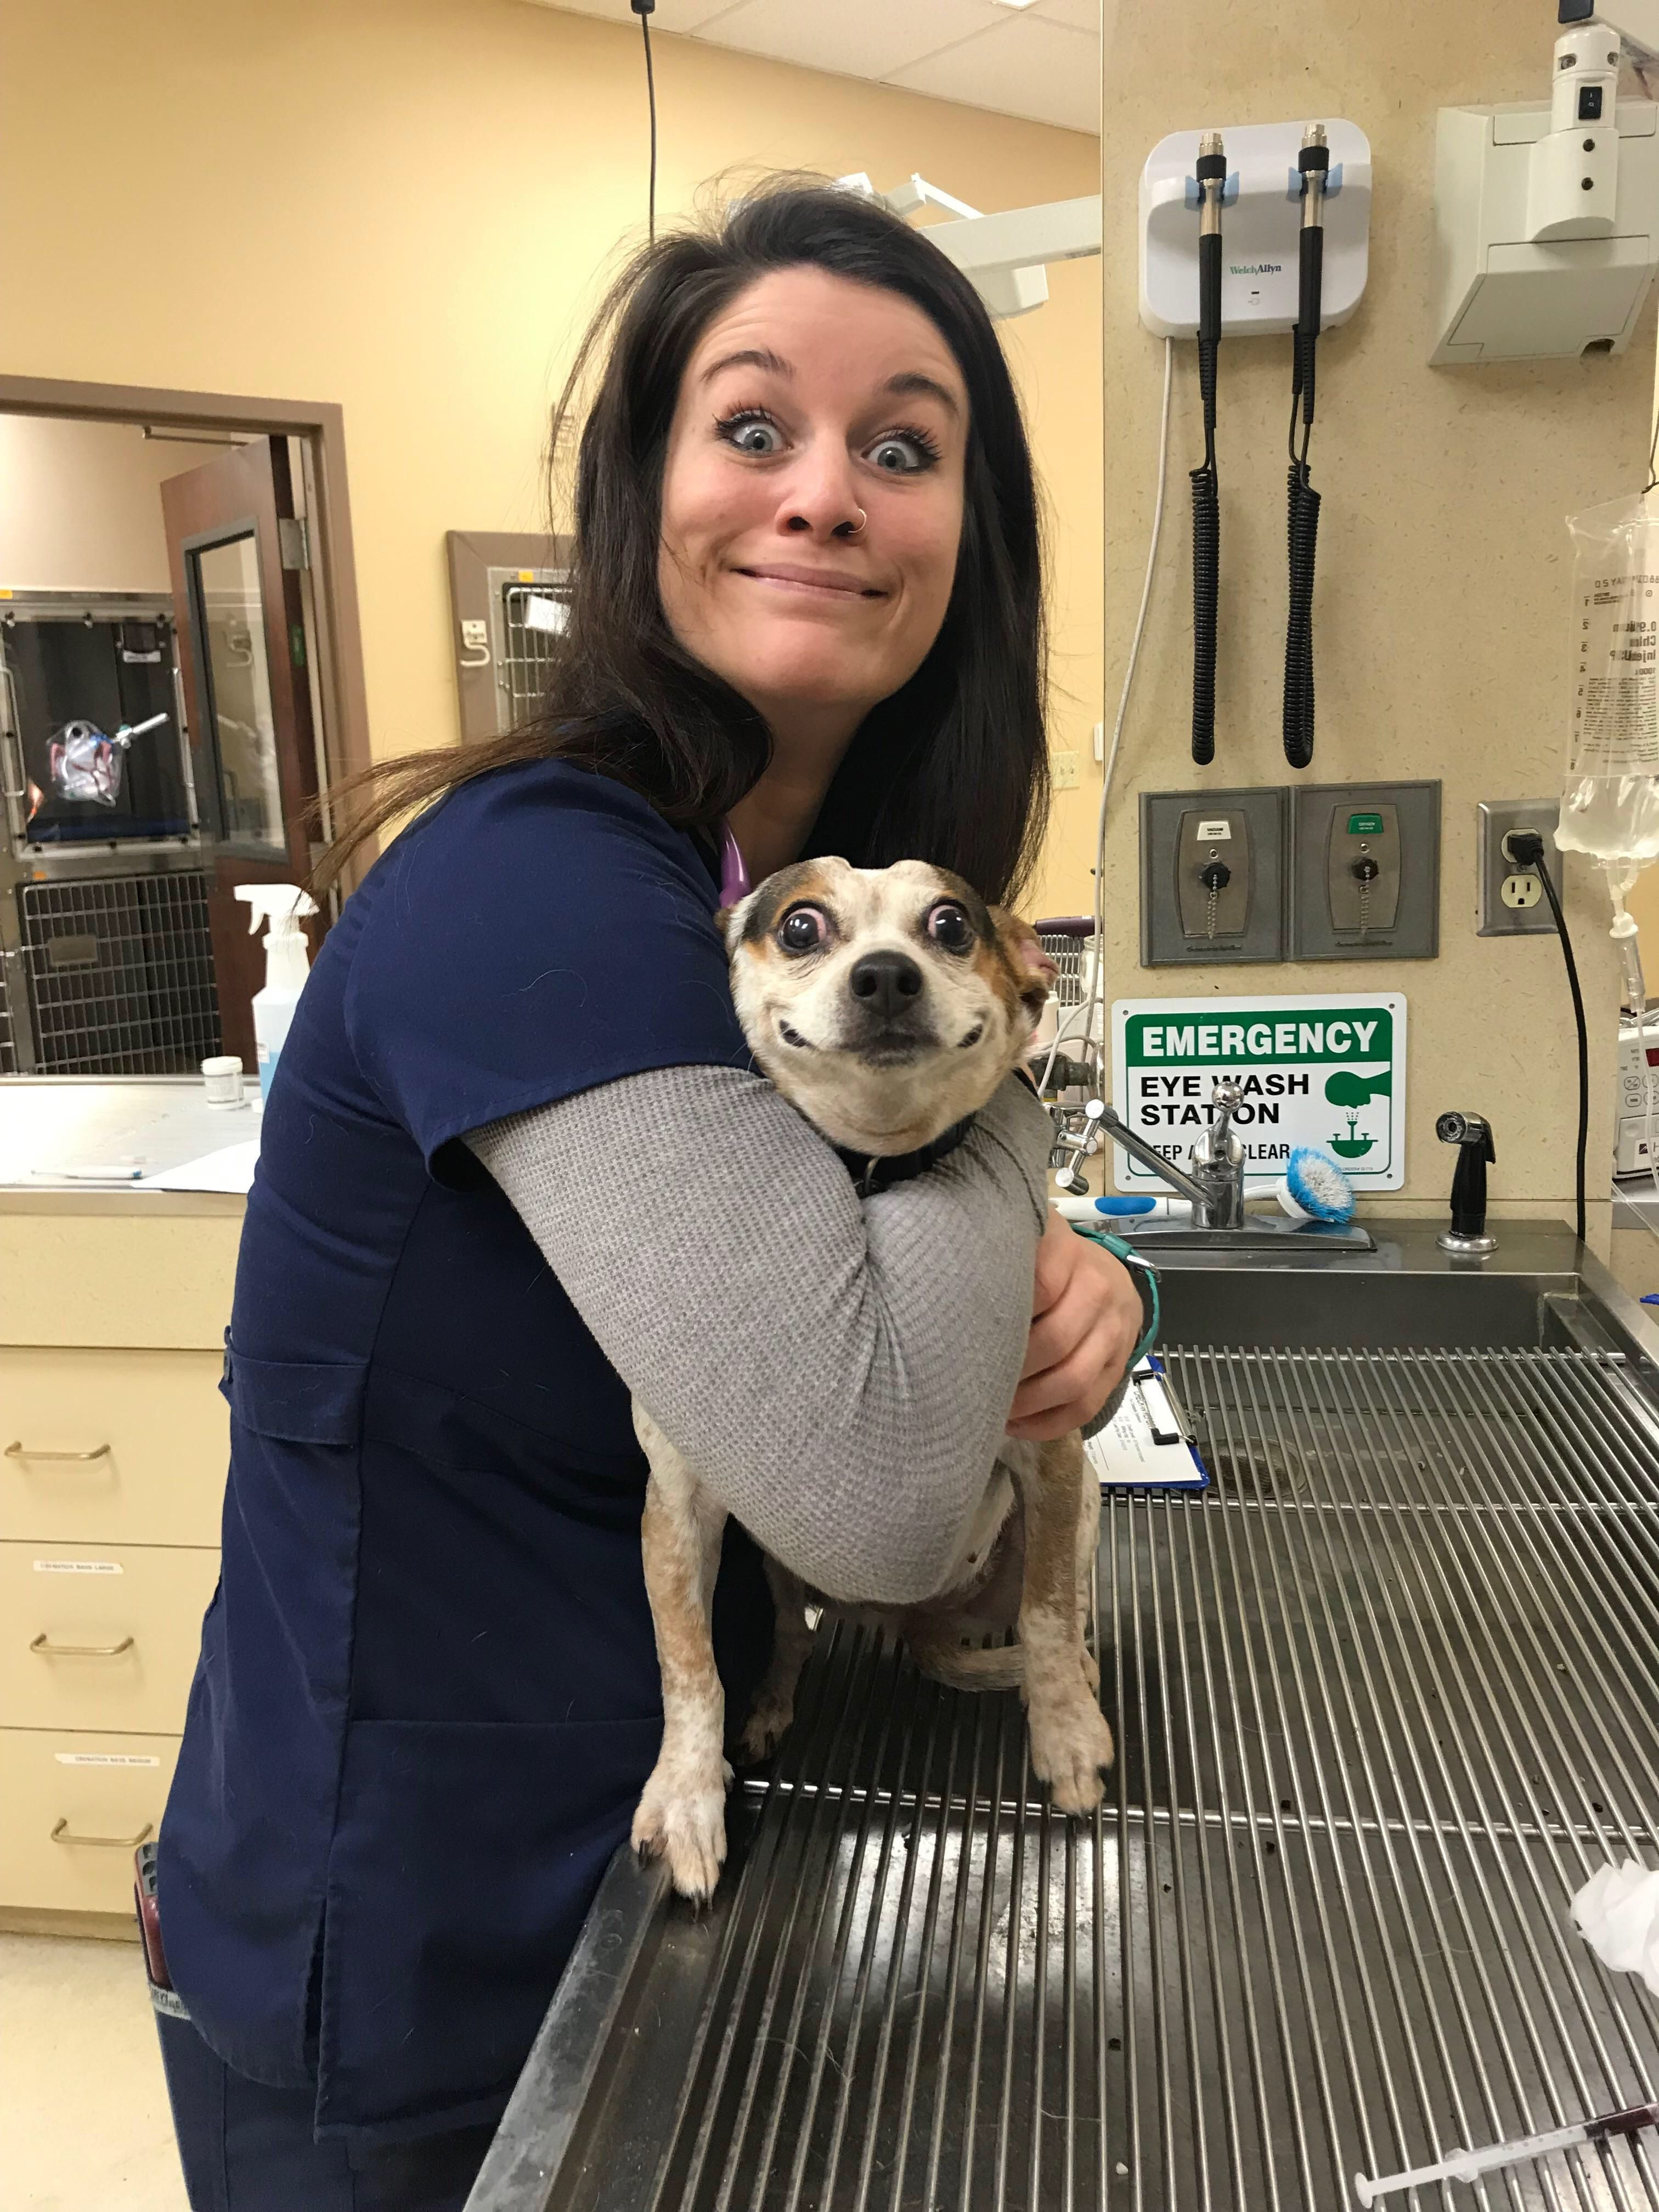 Shocked Pupper Is So Shocked Ft My Equally Shocked Coworker